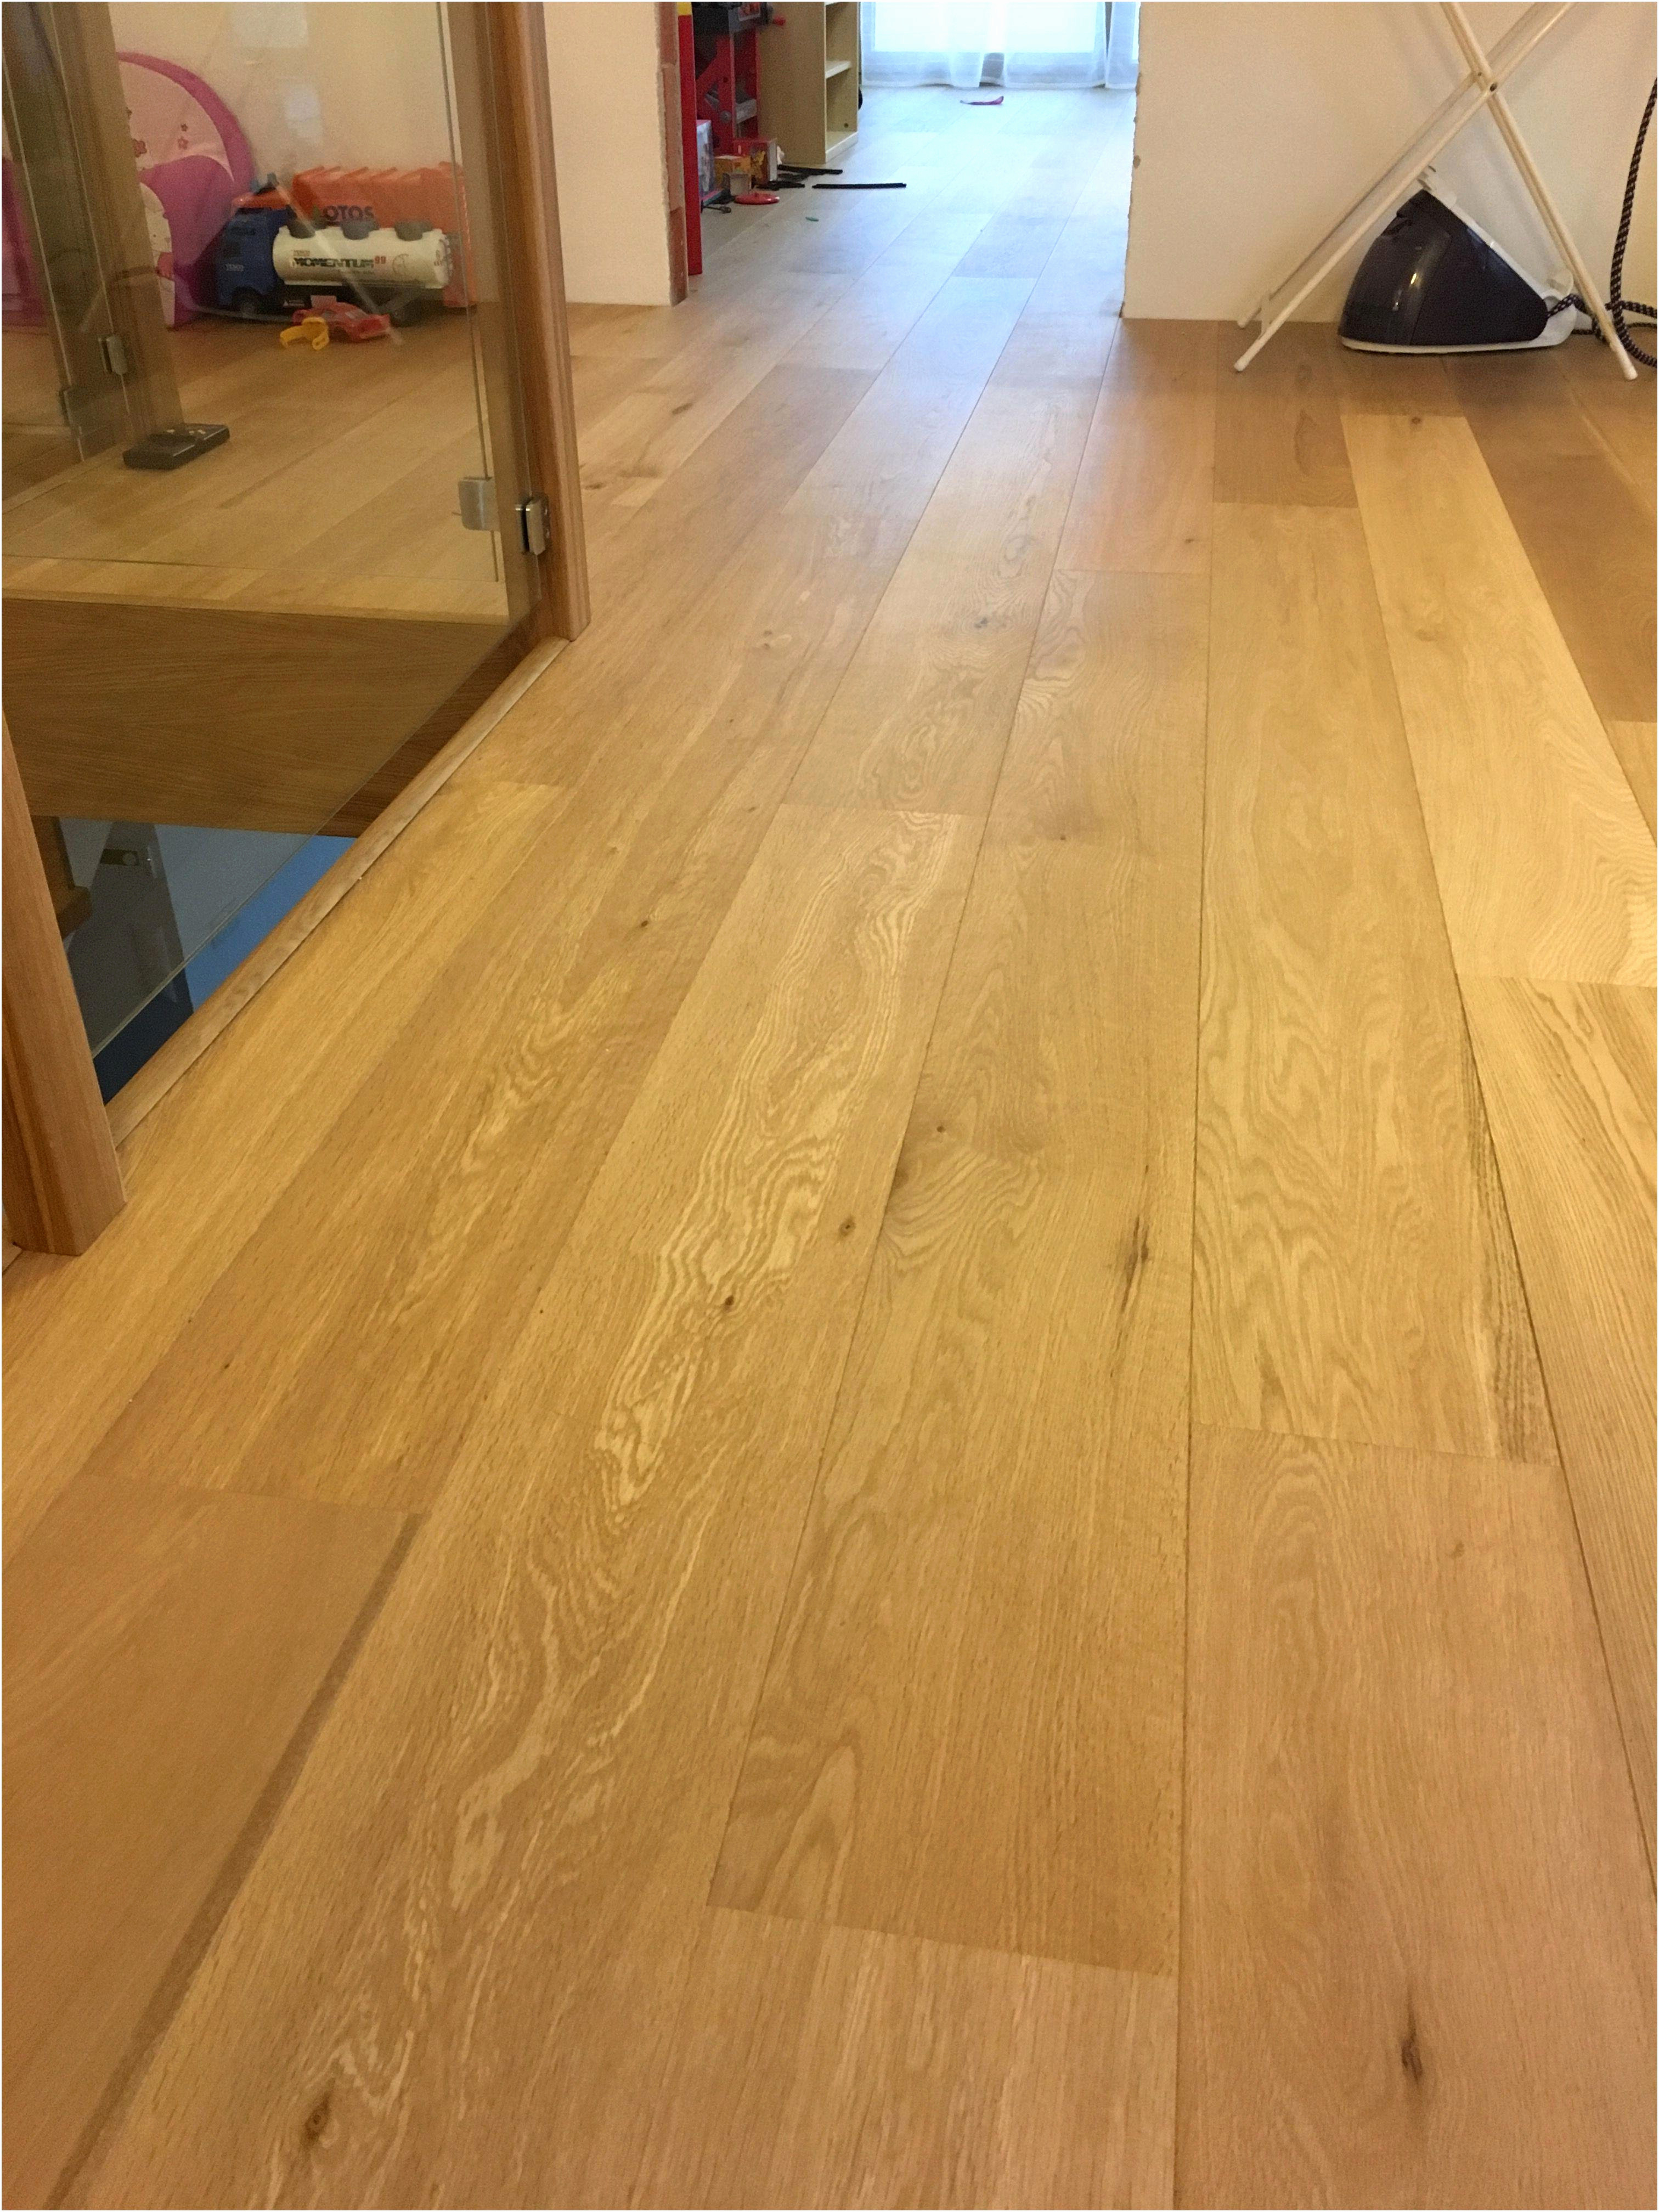 laminate hardwood flooring lowes of lowes laminate flooring installation cost elegant tile wood look pertaining to 37 luxury photograph of lowes laminate flooring installation cost lowes laminate flooring installation cost awesome 24